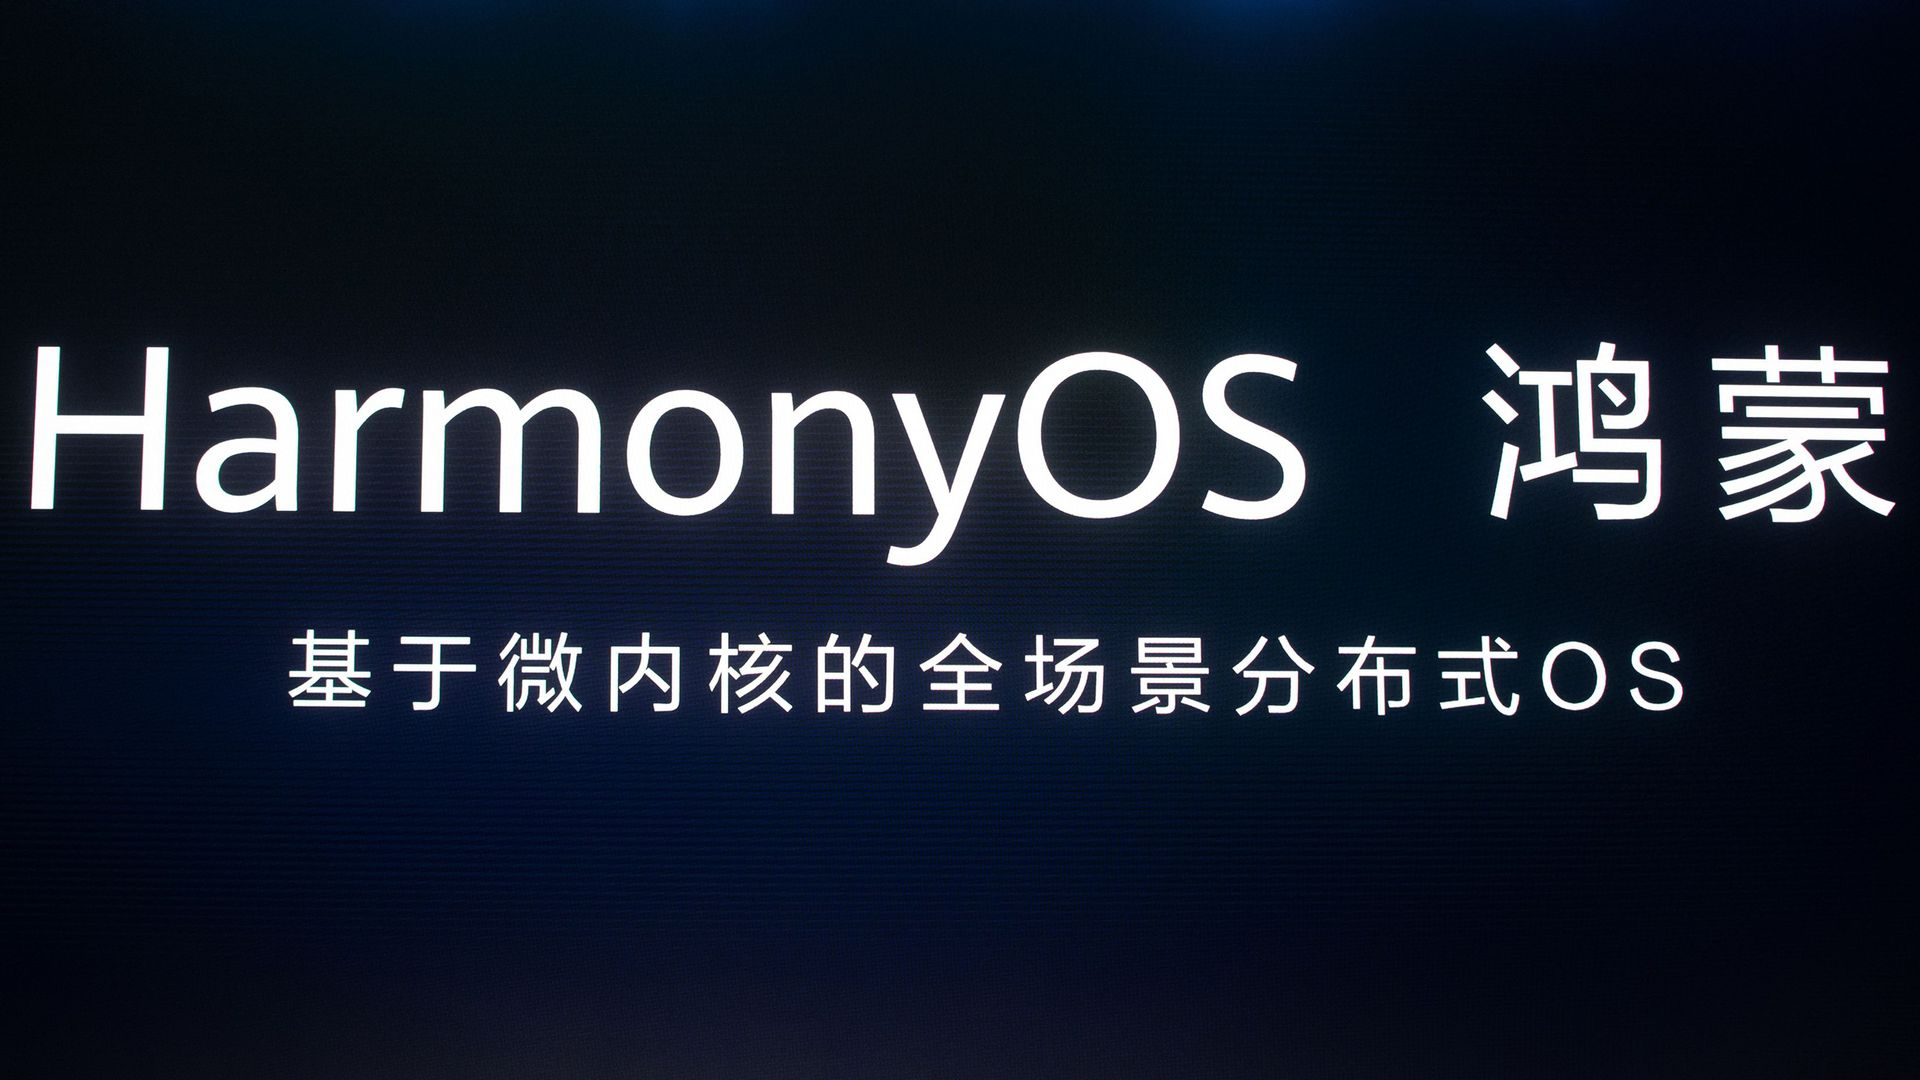 Harmony OS: Huawei unveils its own mobile operating system